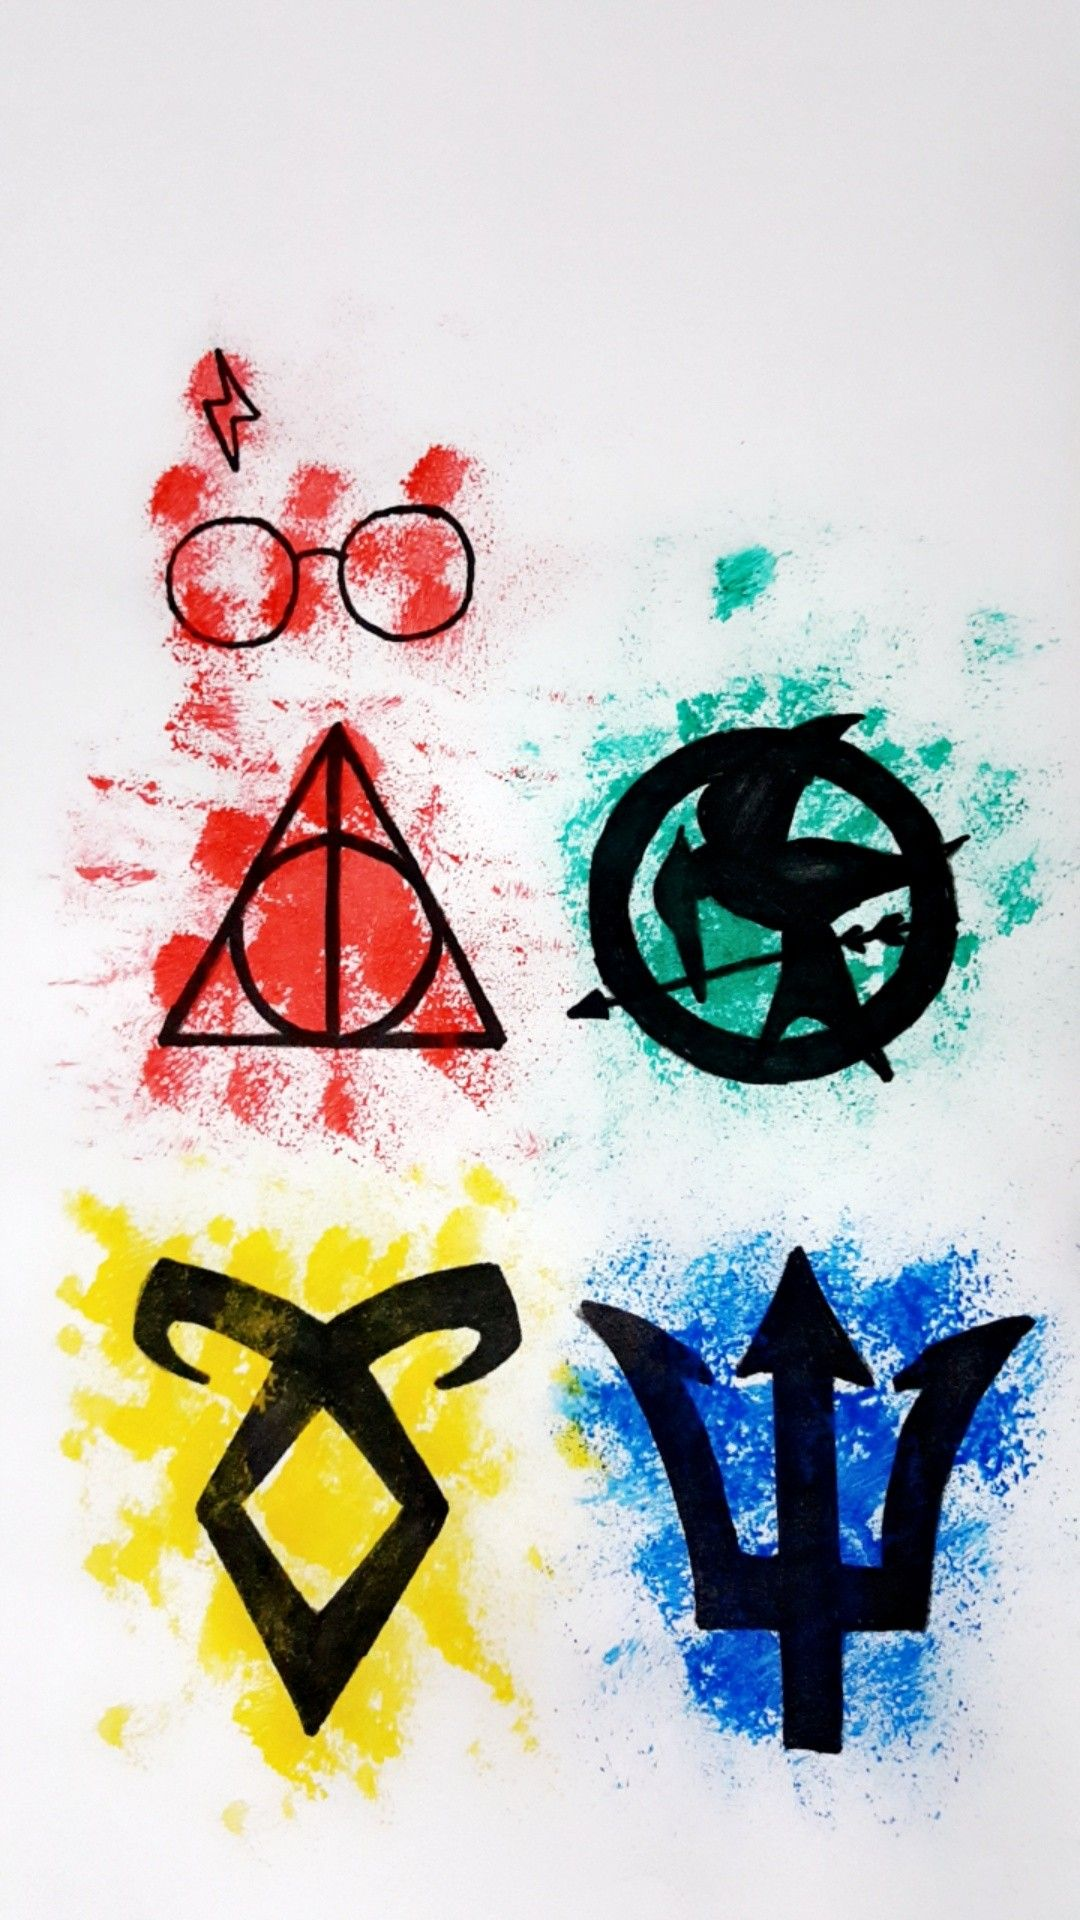 Harry Potter The Hunger Games The Mortal Instruments